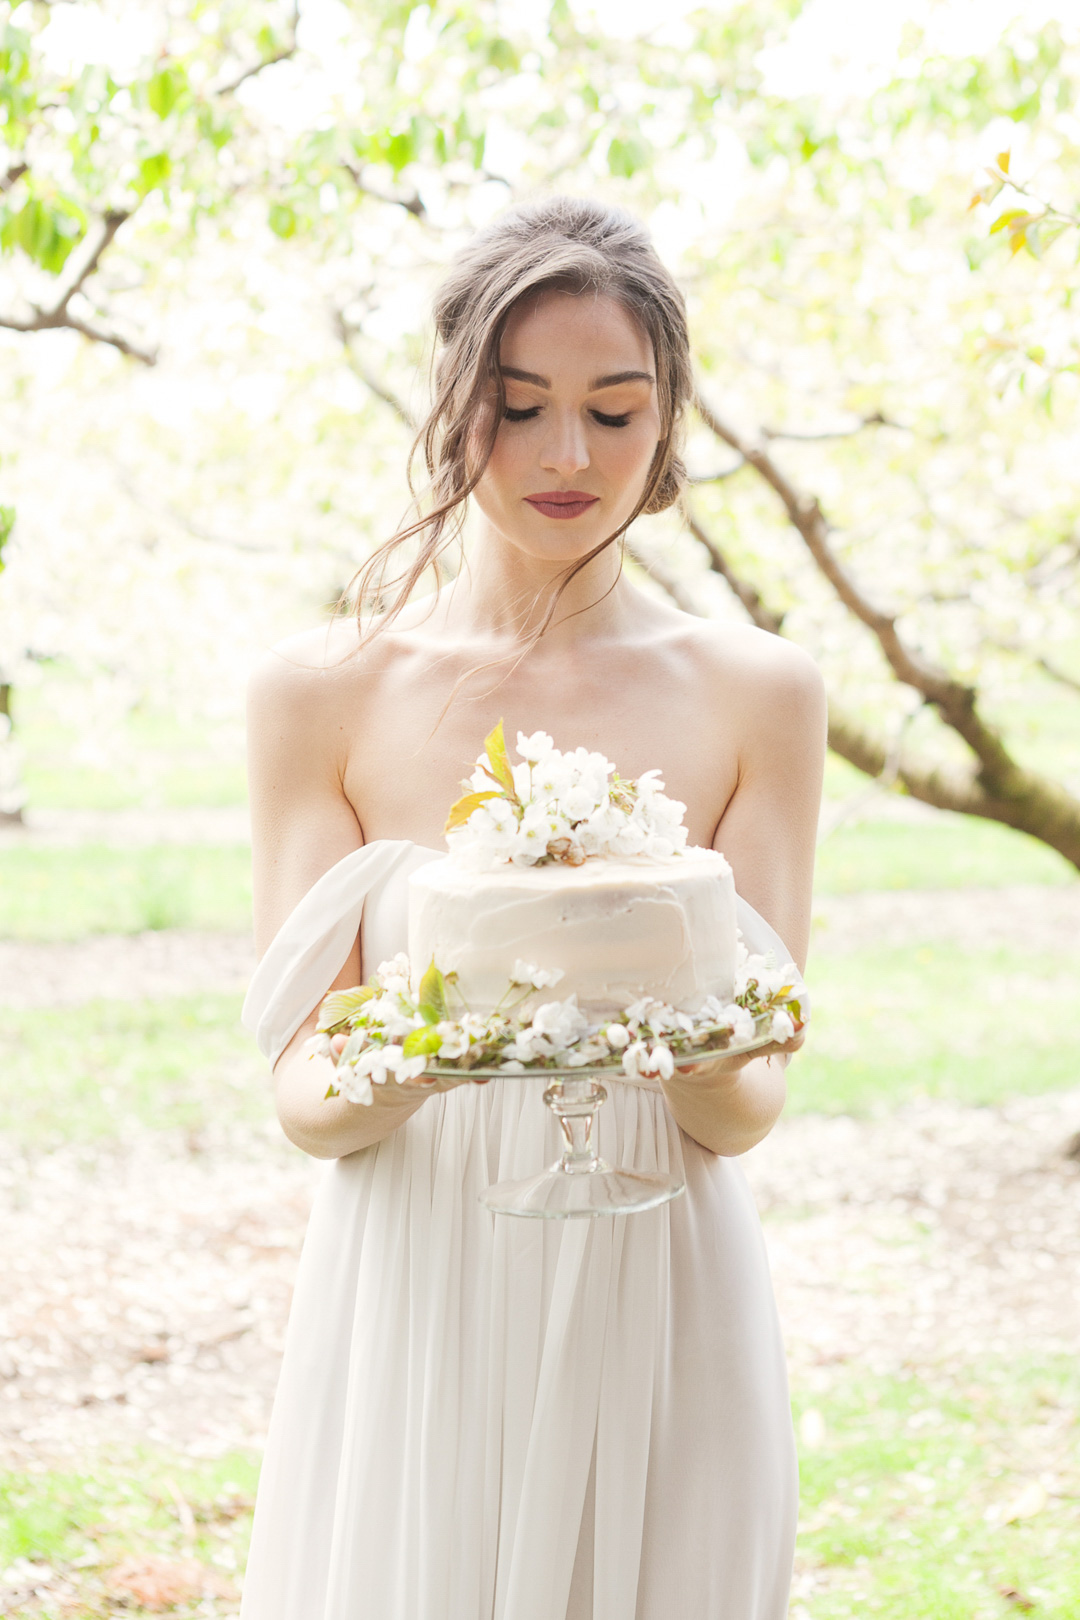 jennifer-xu-photography-vineyard-bride-swish-list-cherry-avenue-farms-vineland-editorial-26.jpg